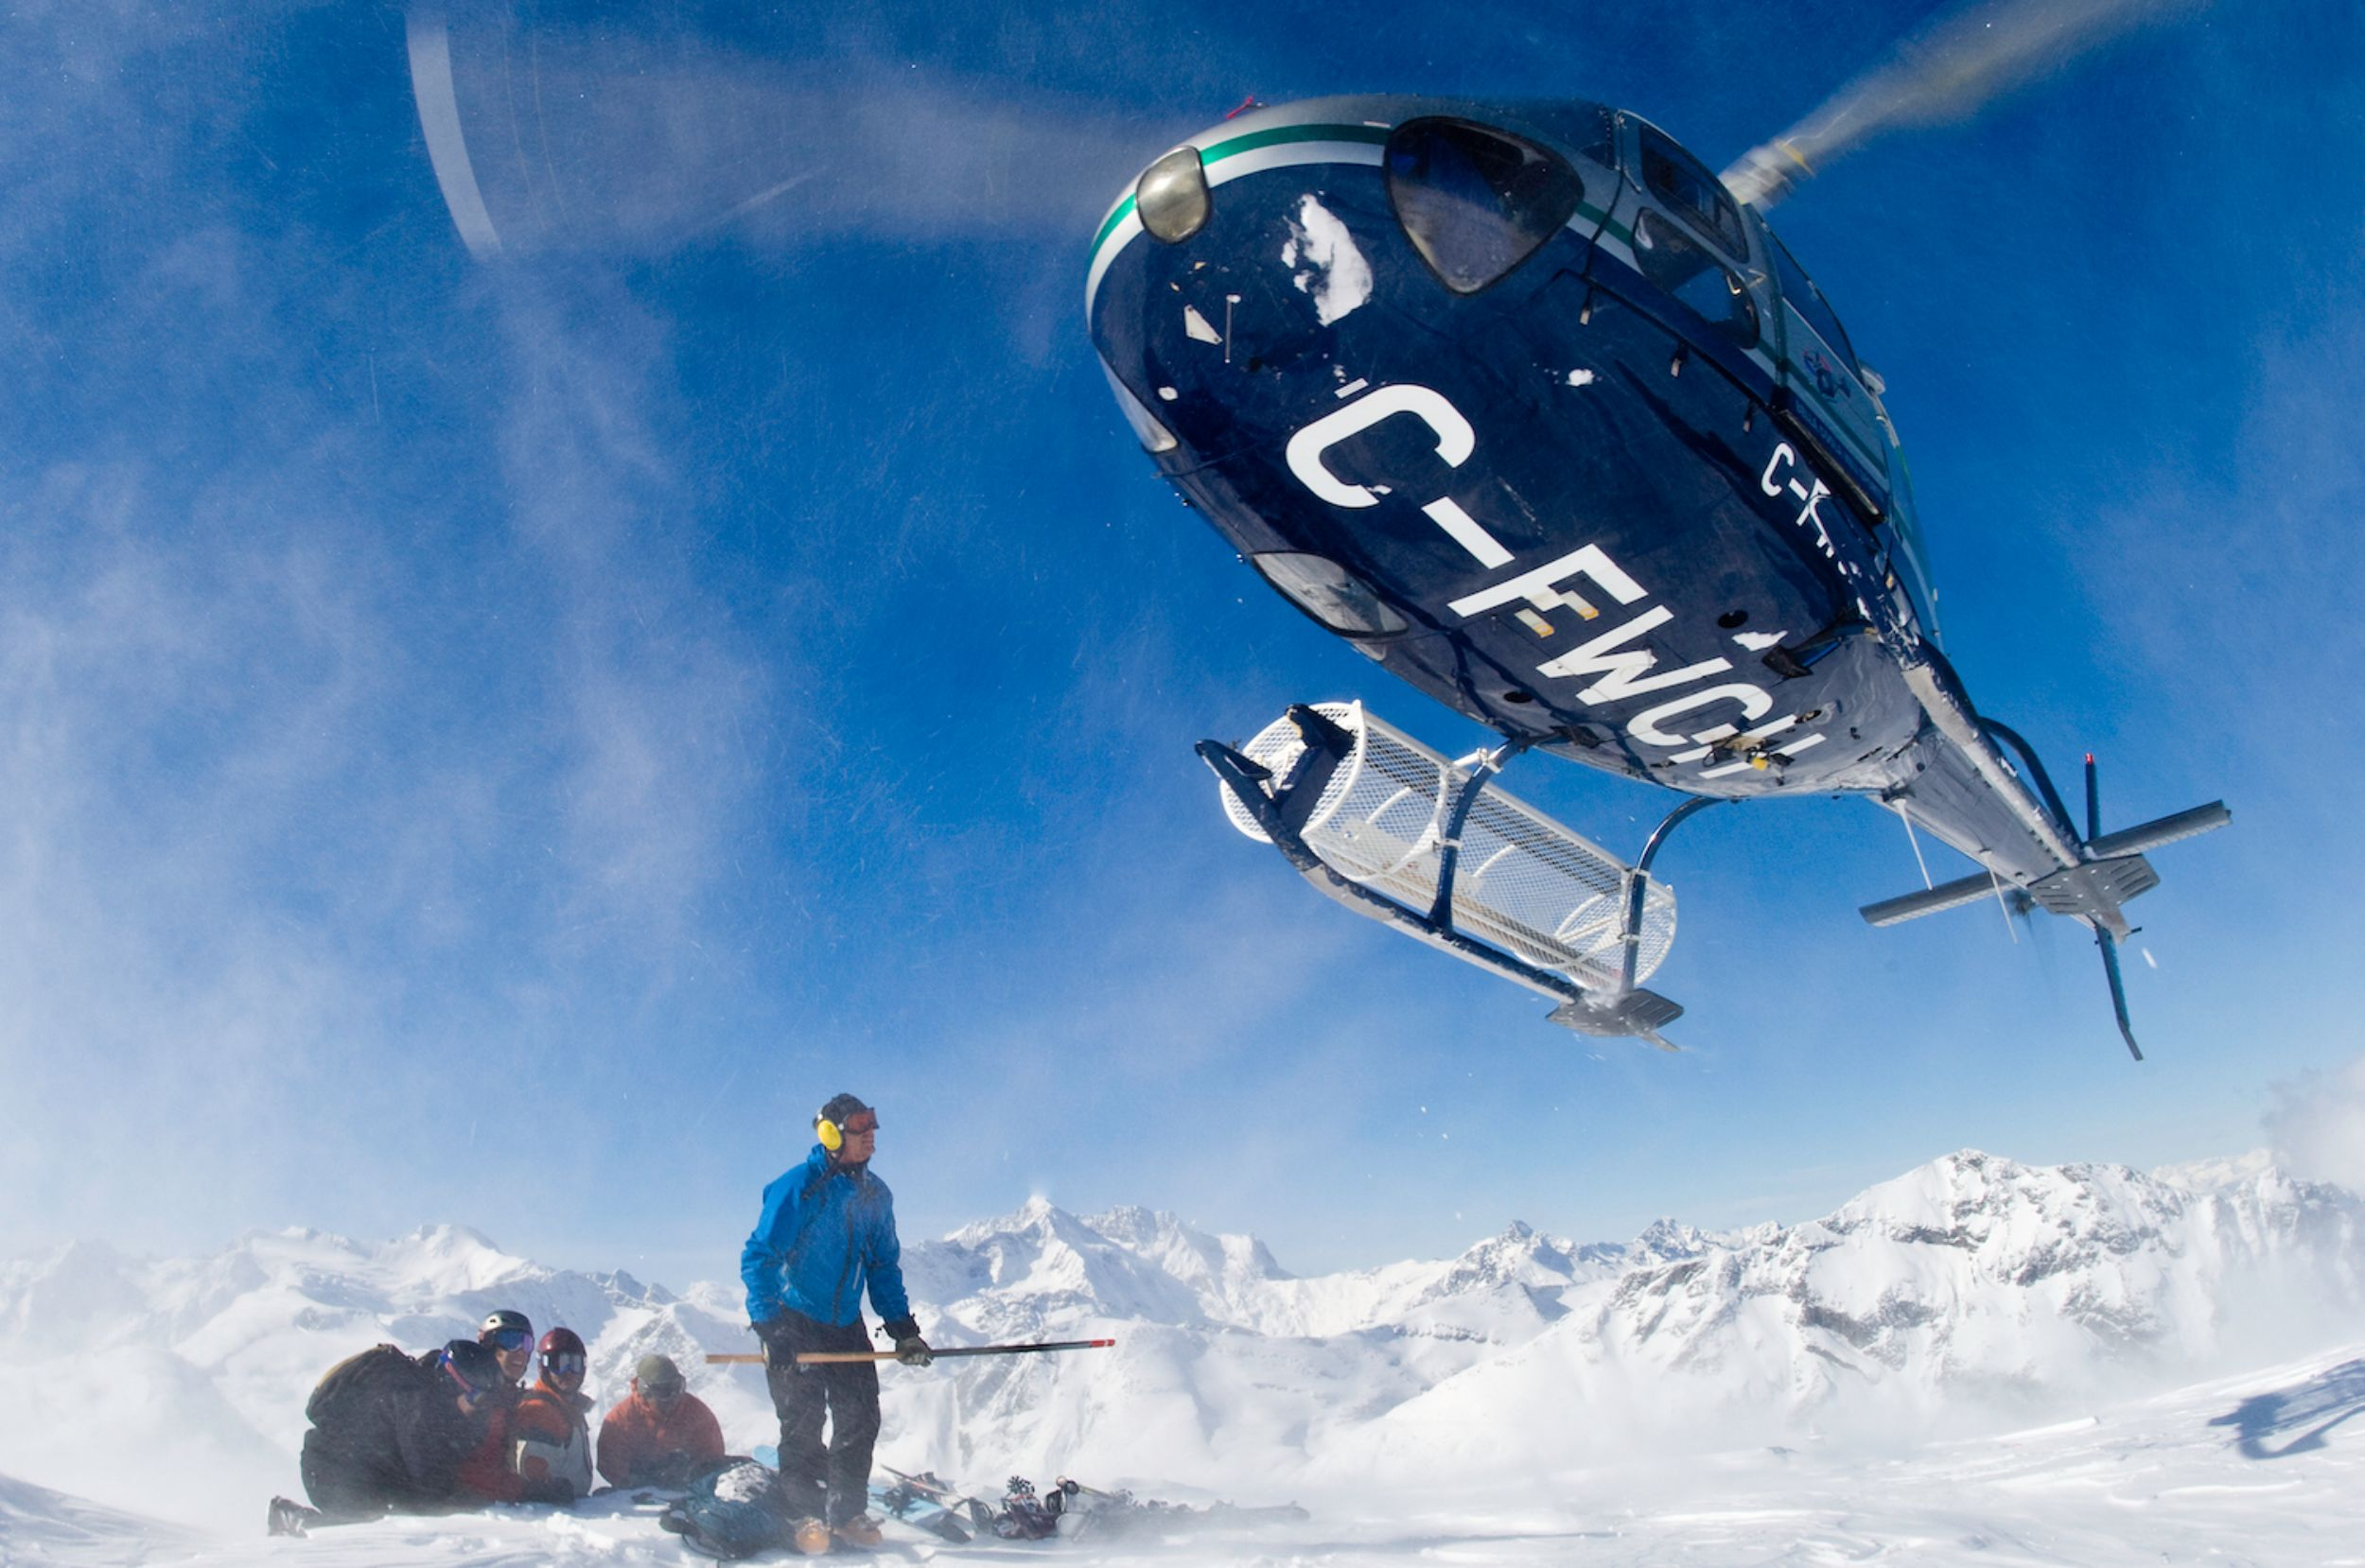 Heli Landing with Group photo Eric Berger and Bella Coola Heli Sports copy.jpg